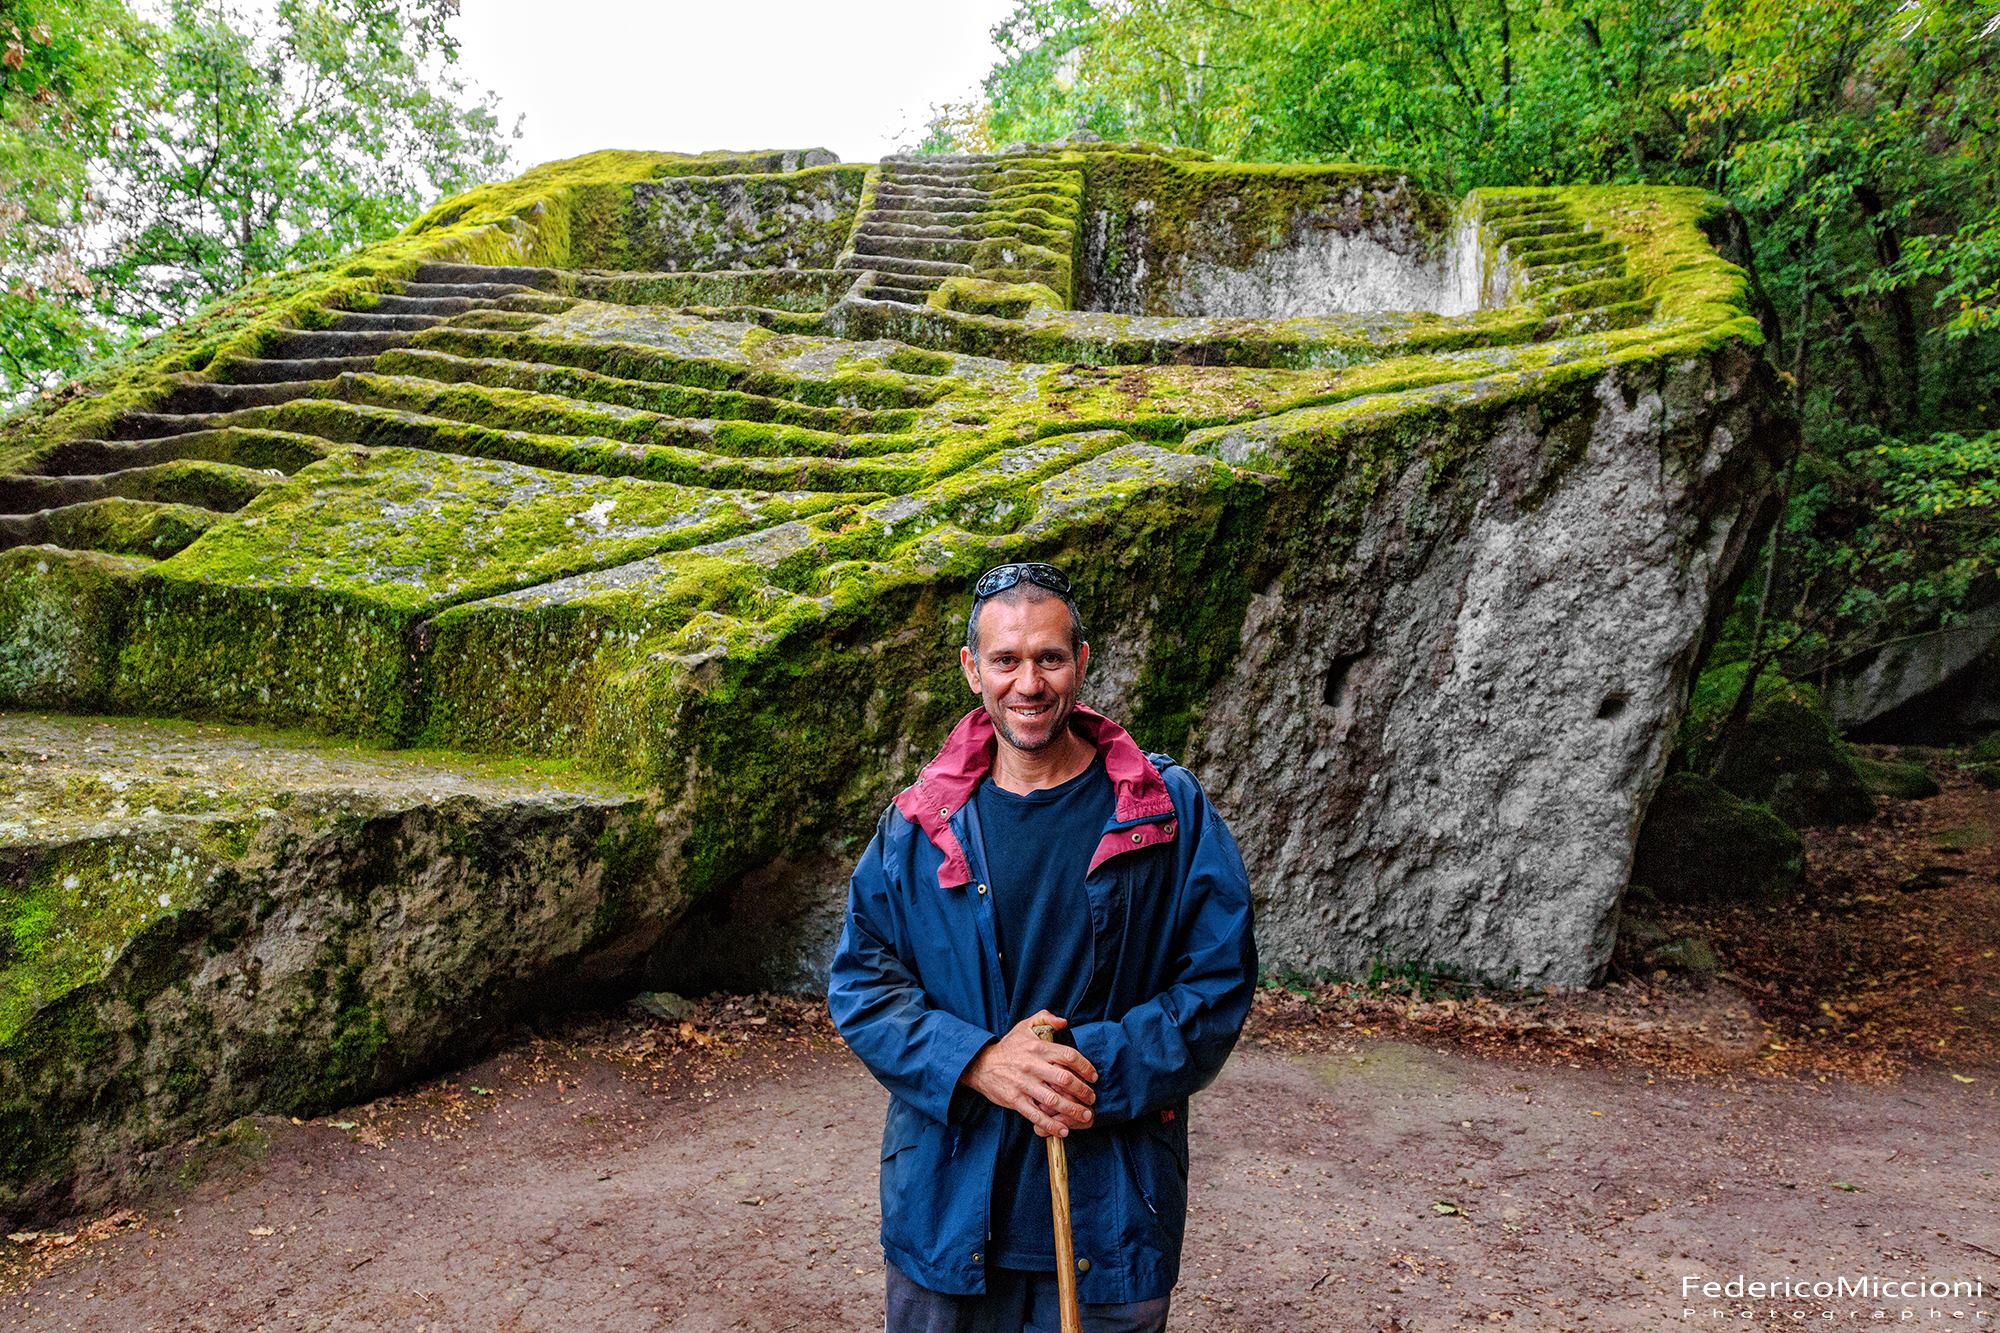 The strange story of the Etruscan Pyramid of Bomarzo